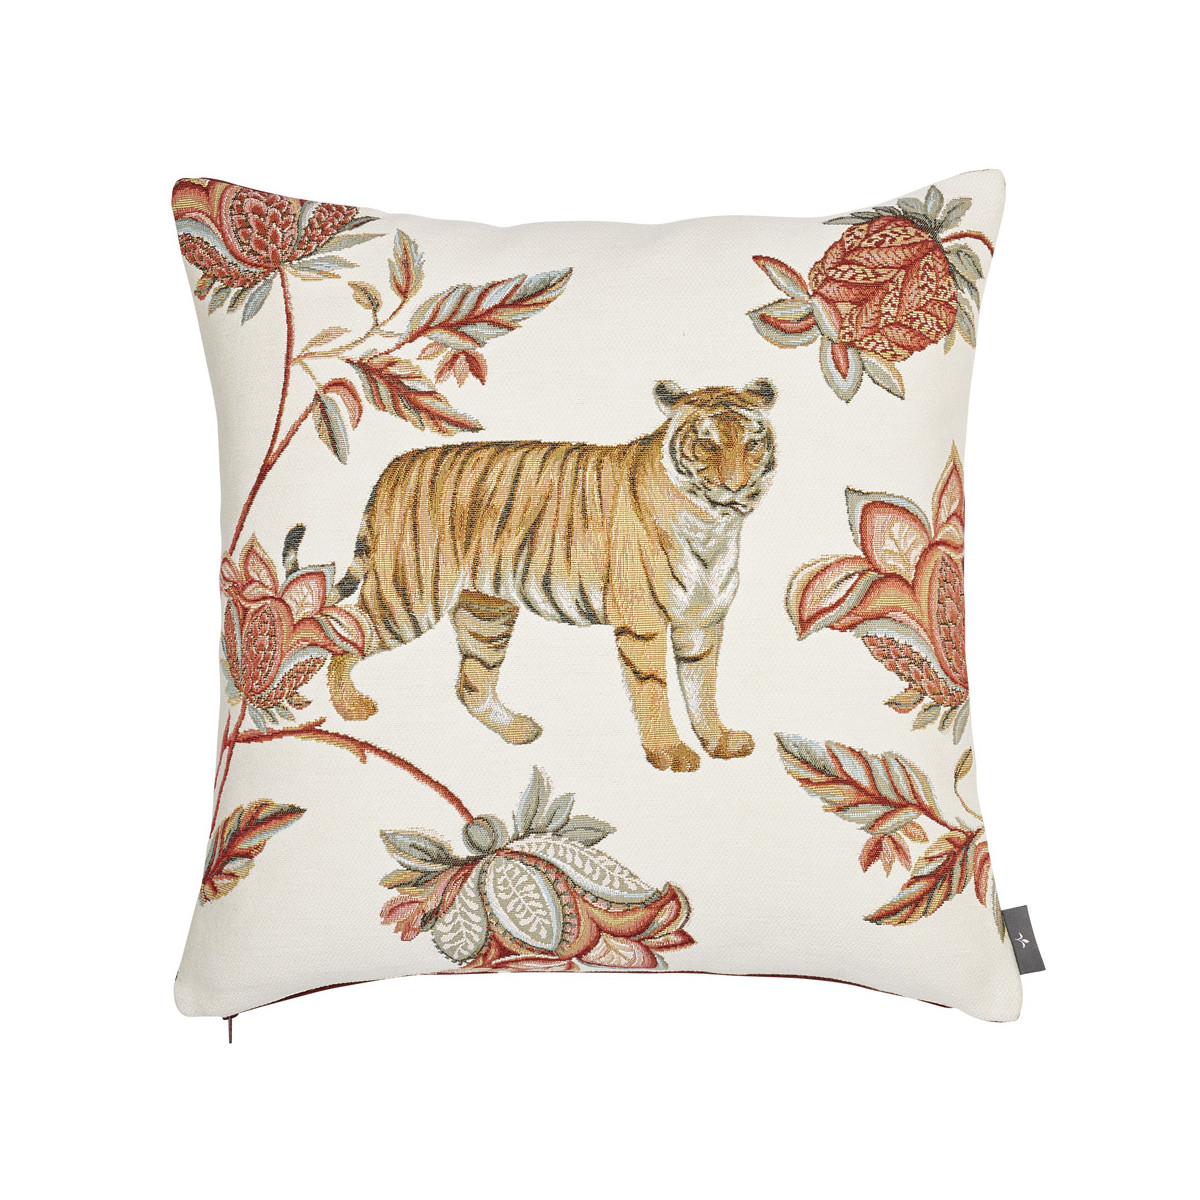 Coussin tapisserie indiennes Blanc   50 x 50